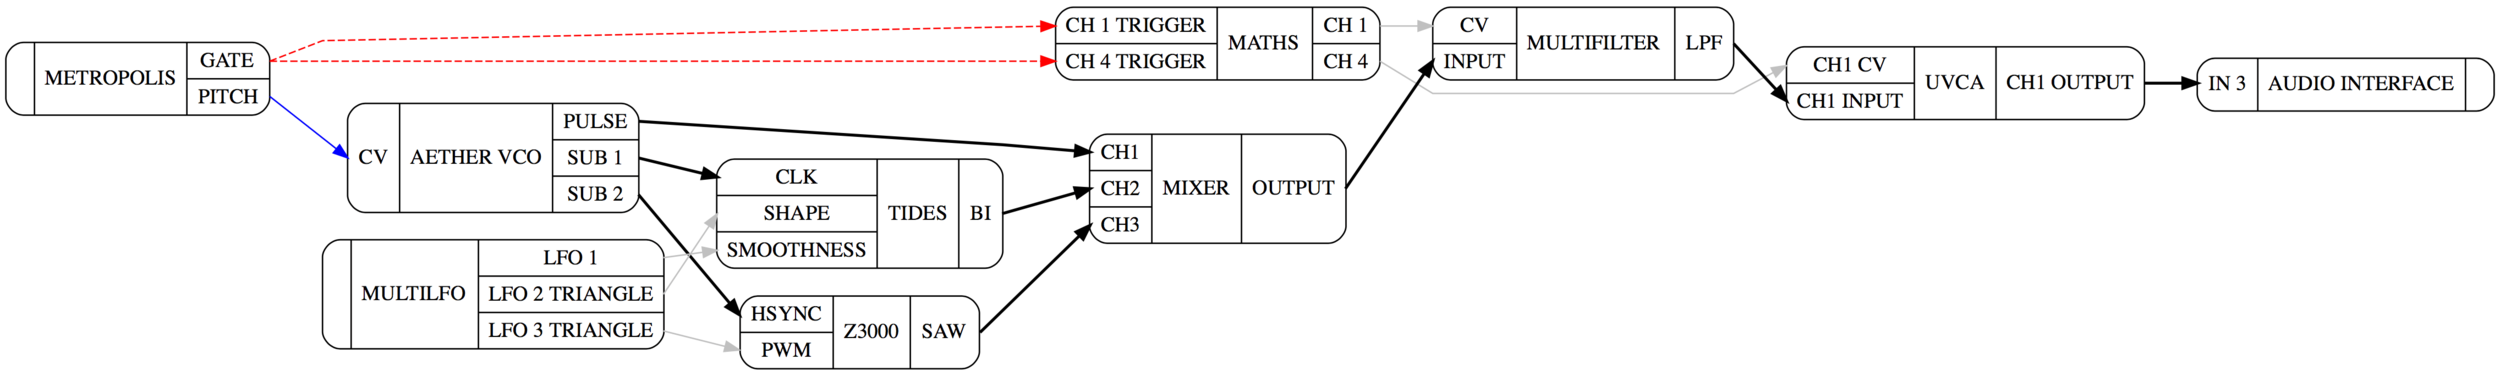 Example of a signal Flow chart generated using the Patchbook parser and the GraphViz Online Editor.